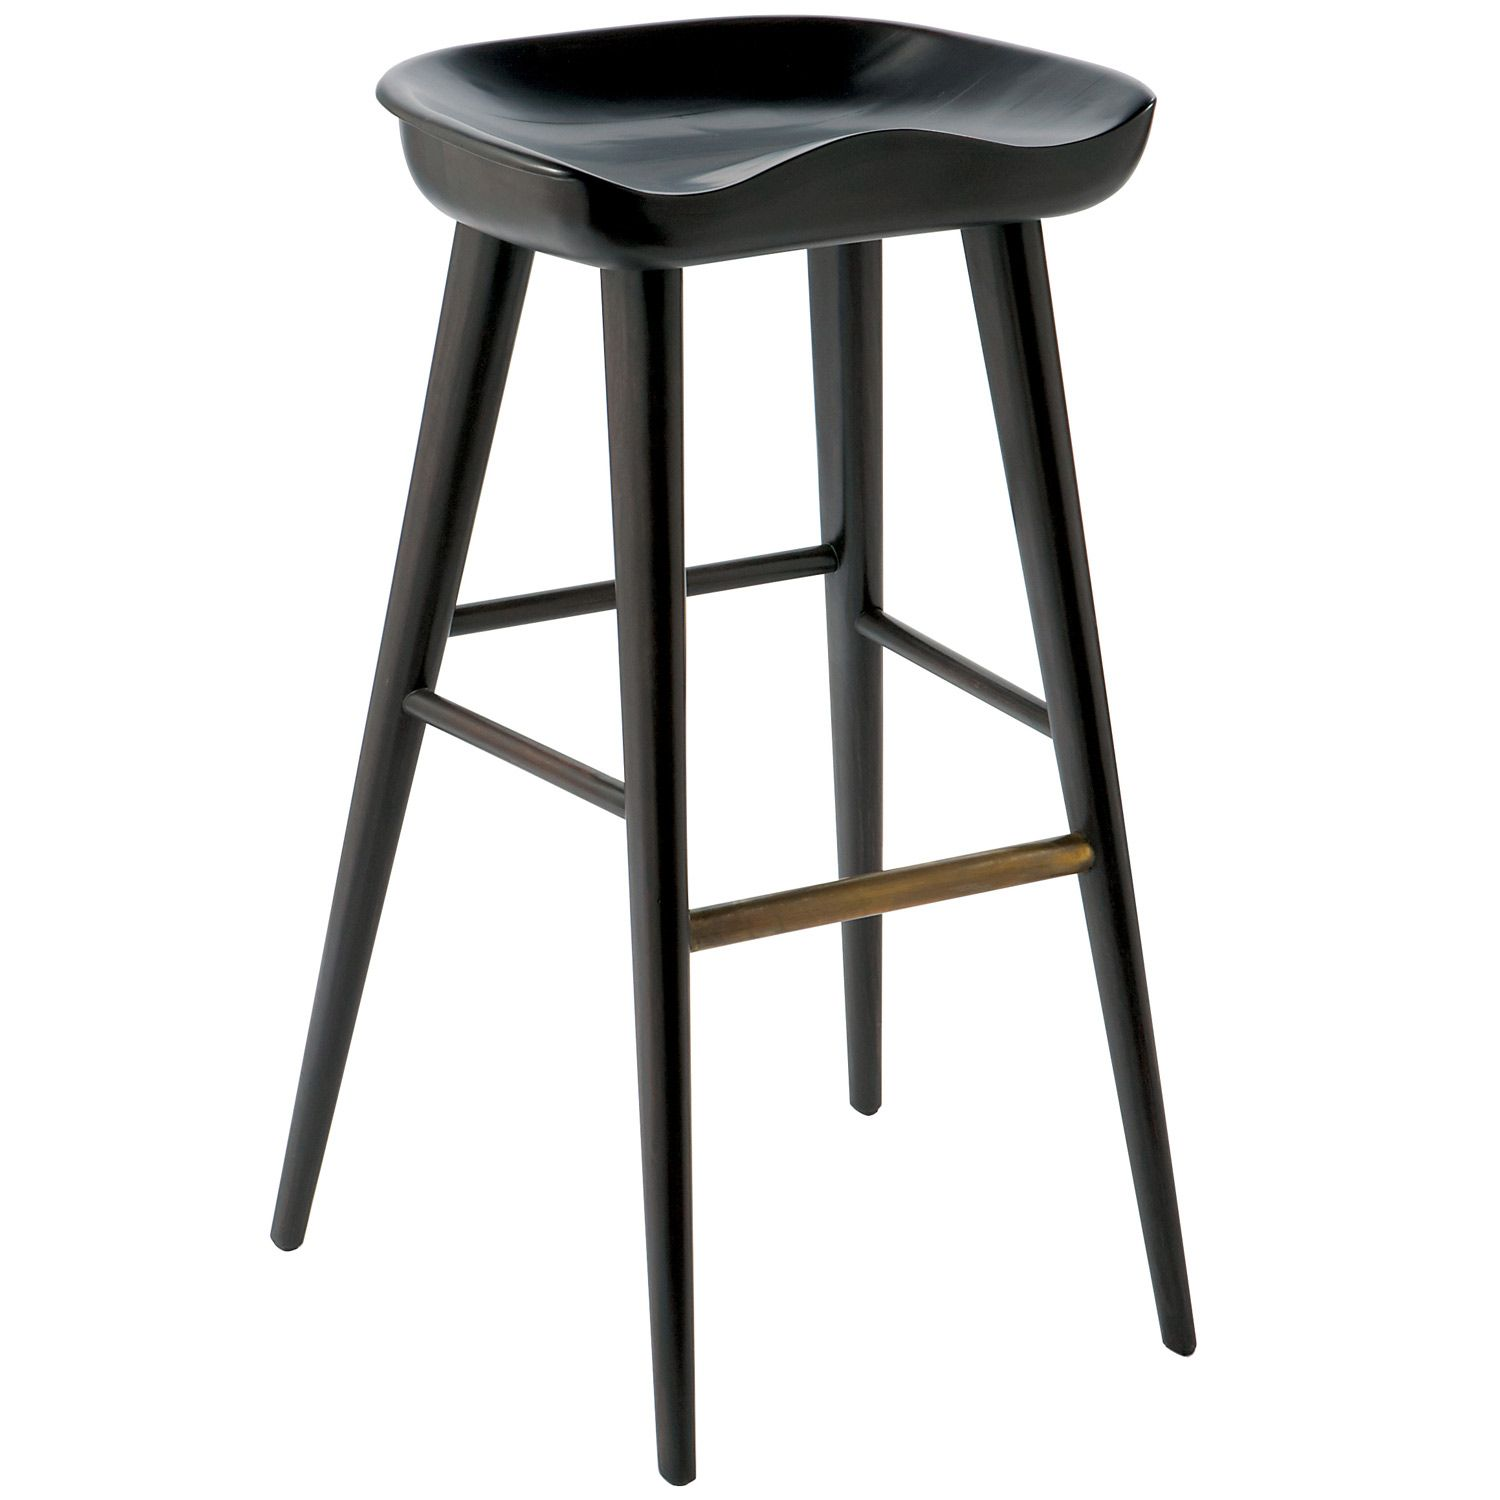 the brownstone balboa stool offers a modern handcrafted look in a